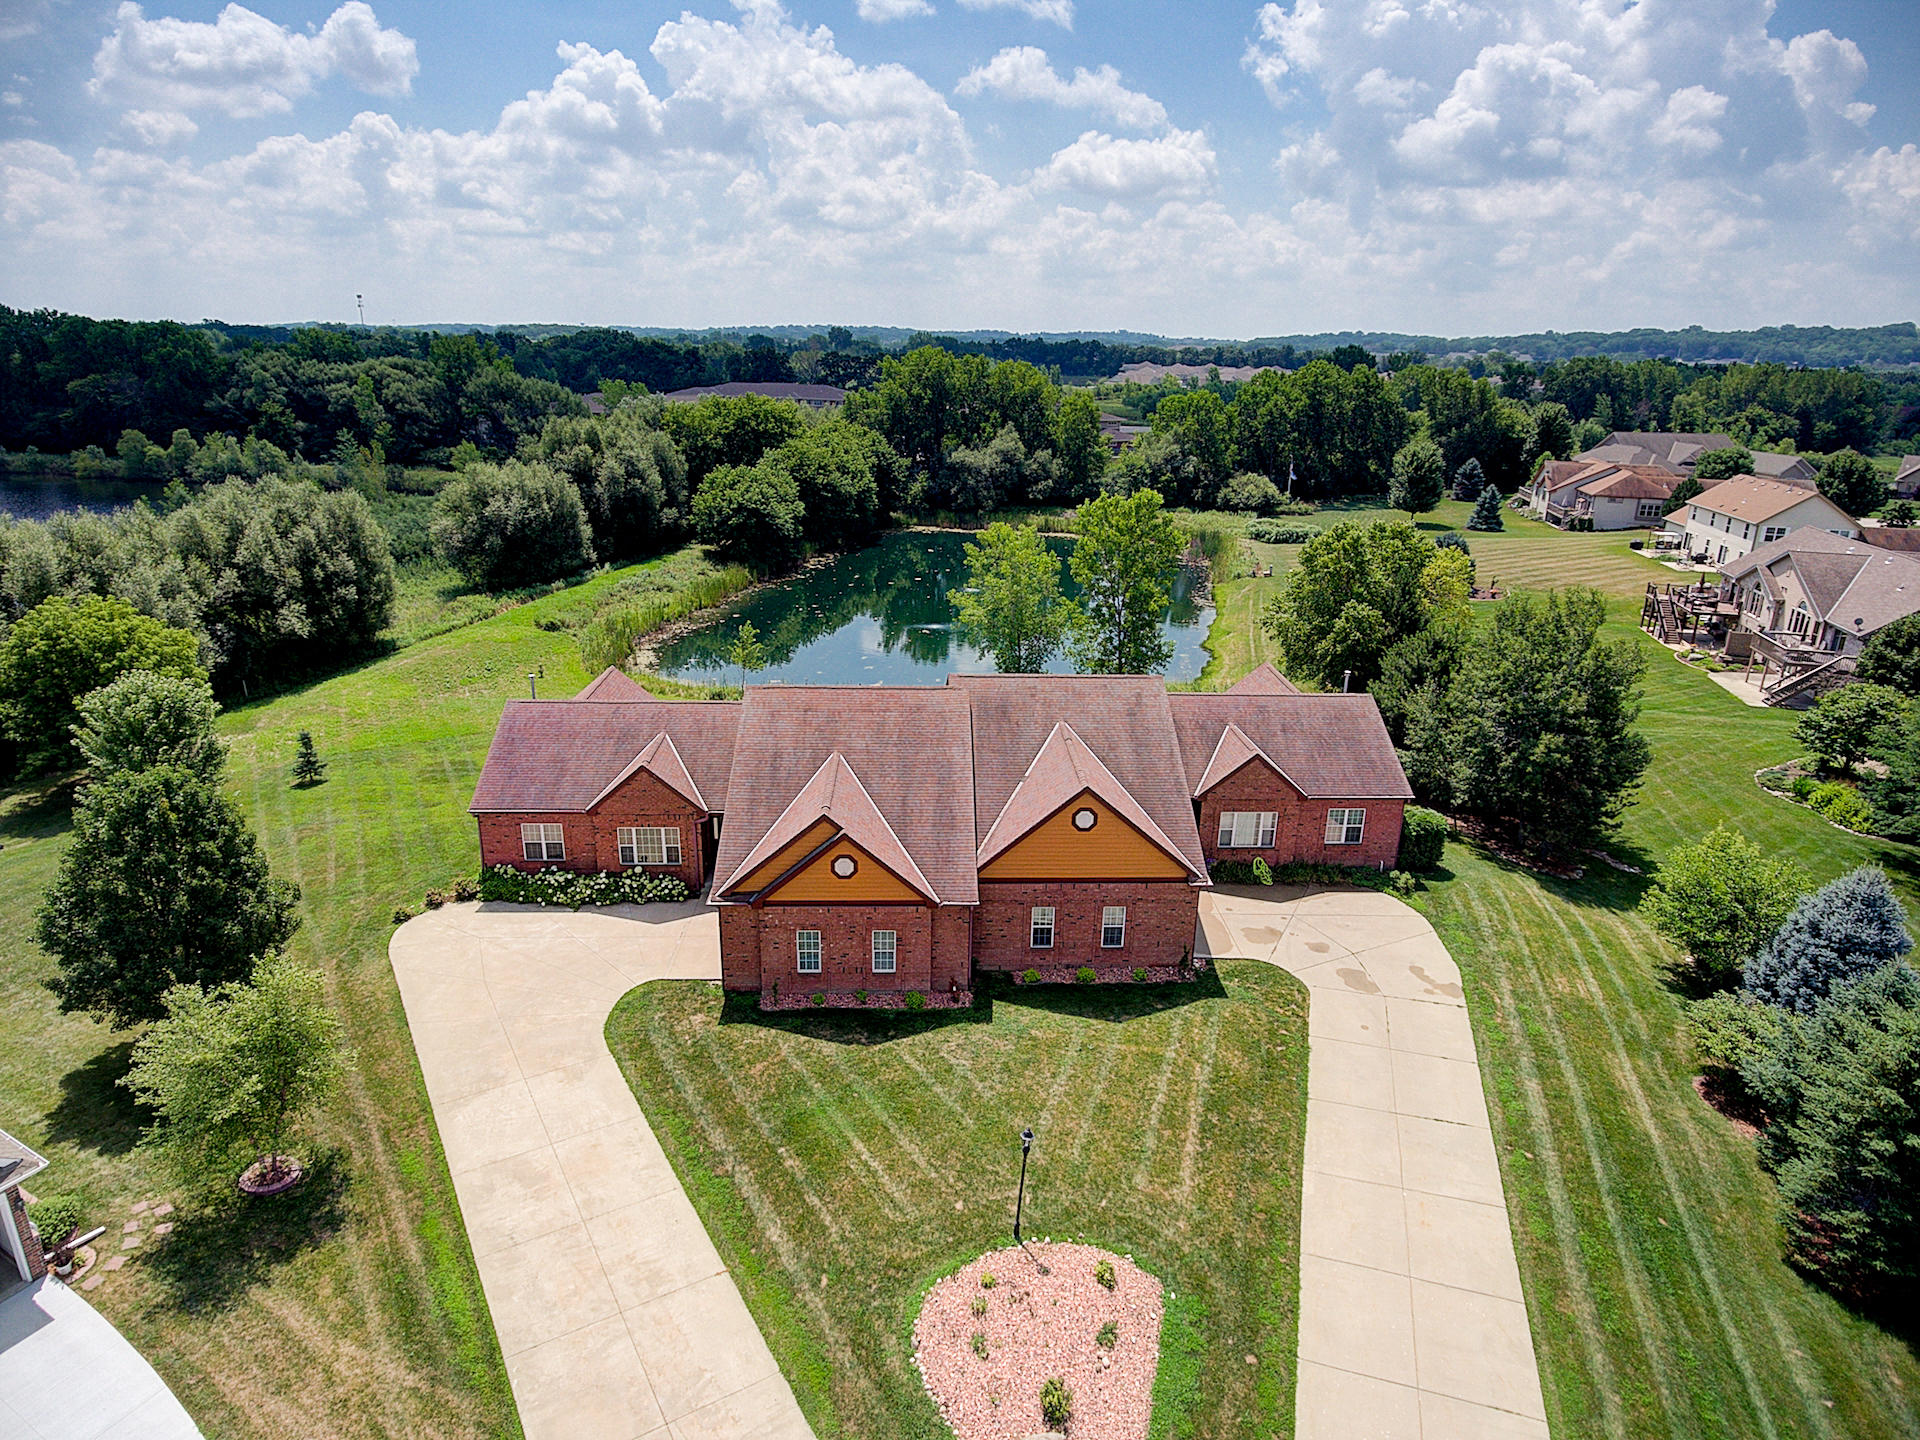 N22W26481 Shooting Star Ct, Pewaukee, Wisconsin 53072, 4 Bedrooms Bedrooms, 9 Rooms Rooms,3 BathroomsBathrooms,Condominiums,For Sale,Shooting Star Ct,1,1612117